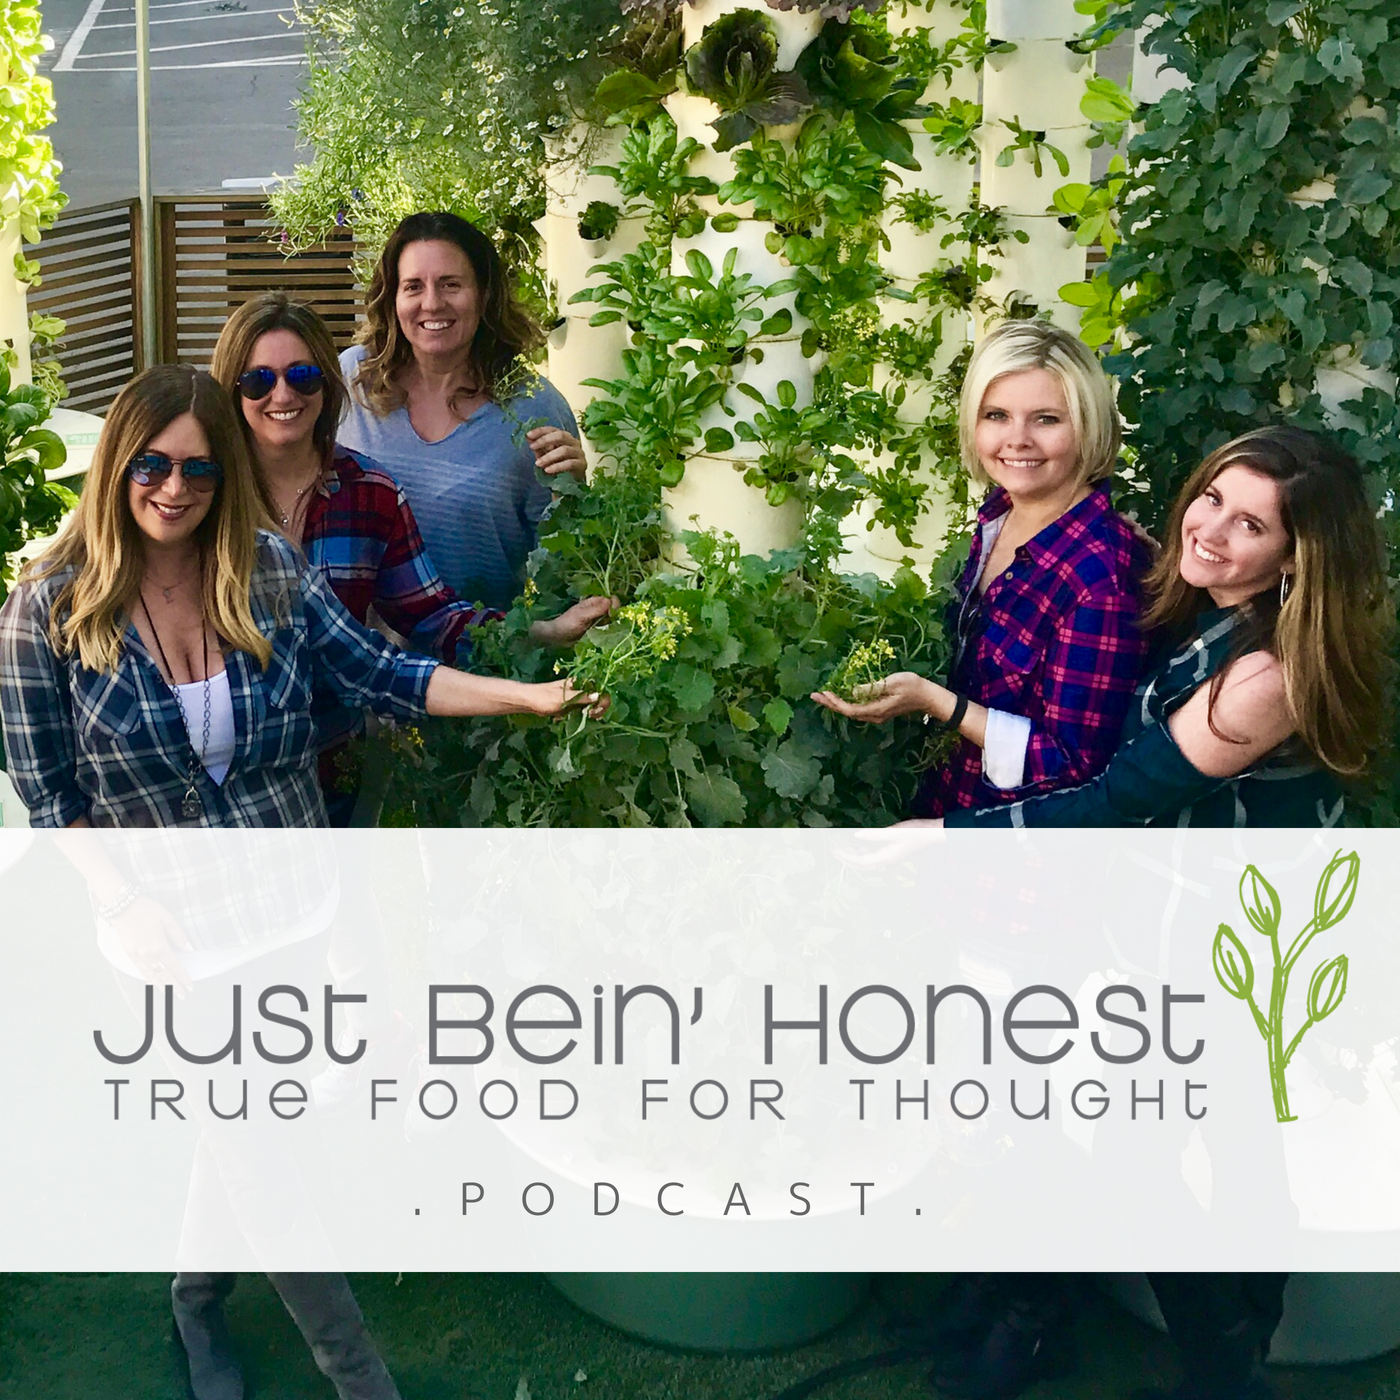 LA URBAN FARMS _ Just Bein' Honest - PODCAST